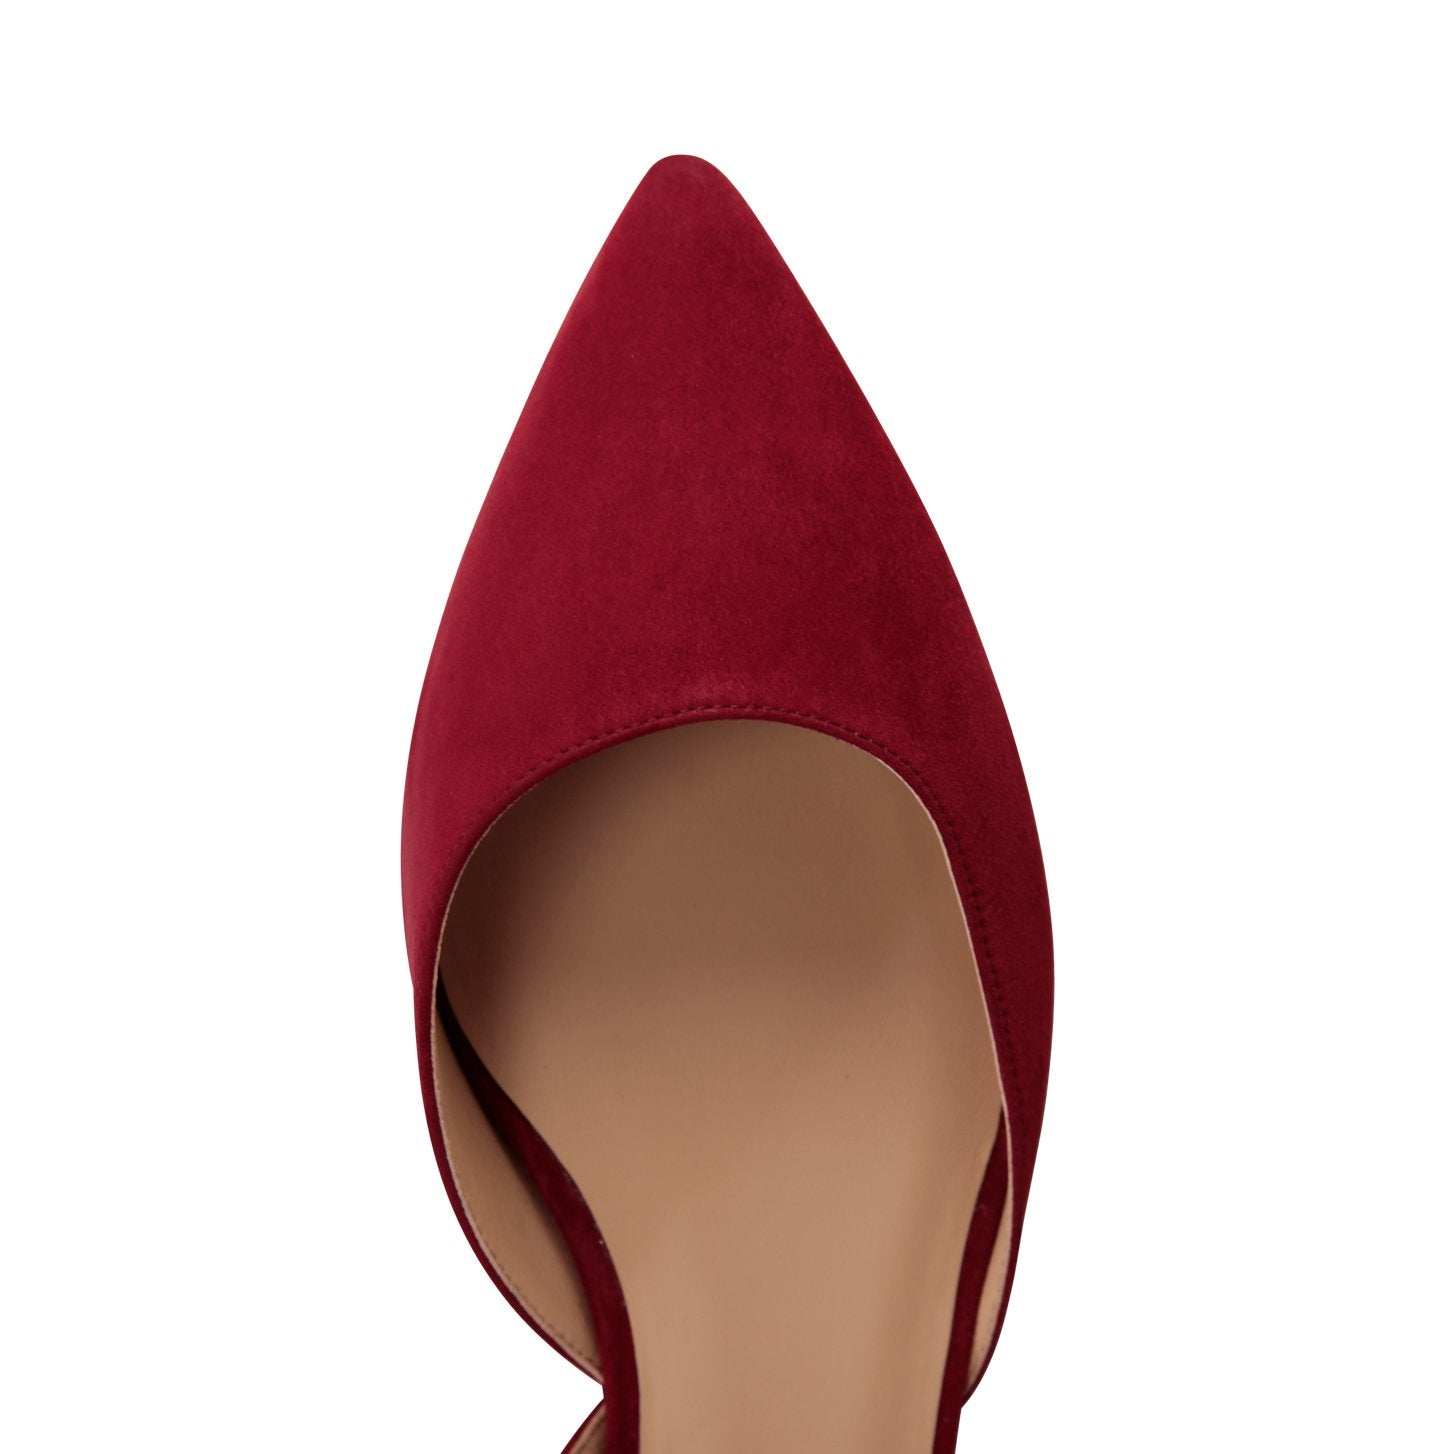 PONZA - Velukid Bordeaux, VIAJIYU - Women's Hand Made Sustainable Luxury Shoes. Made in Italy. Made to Order.